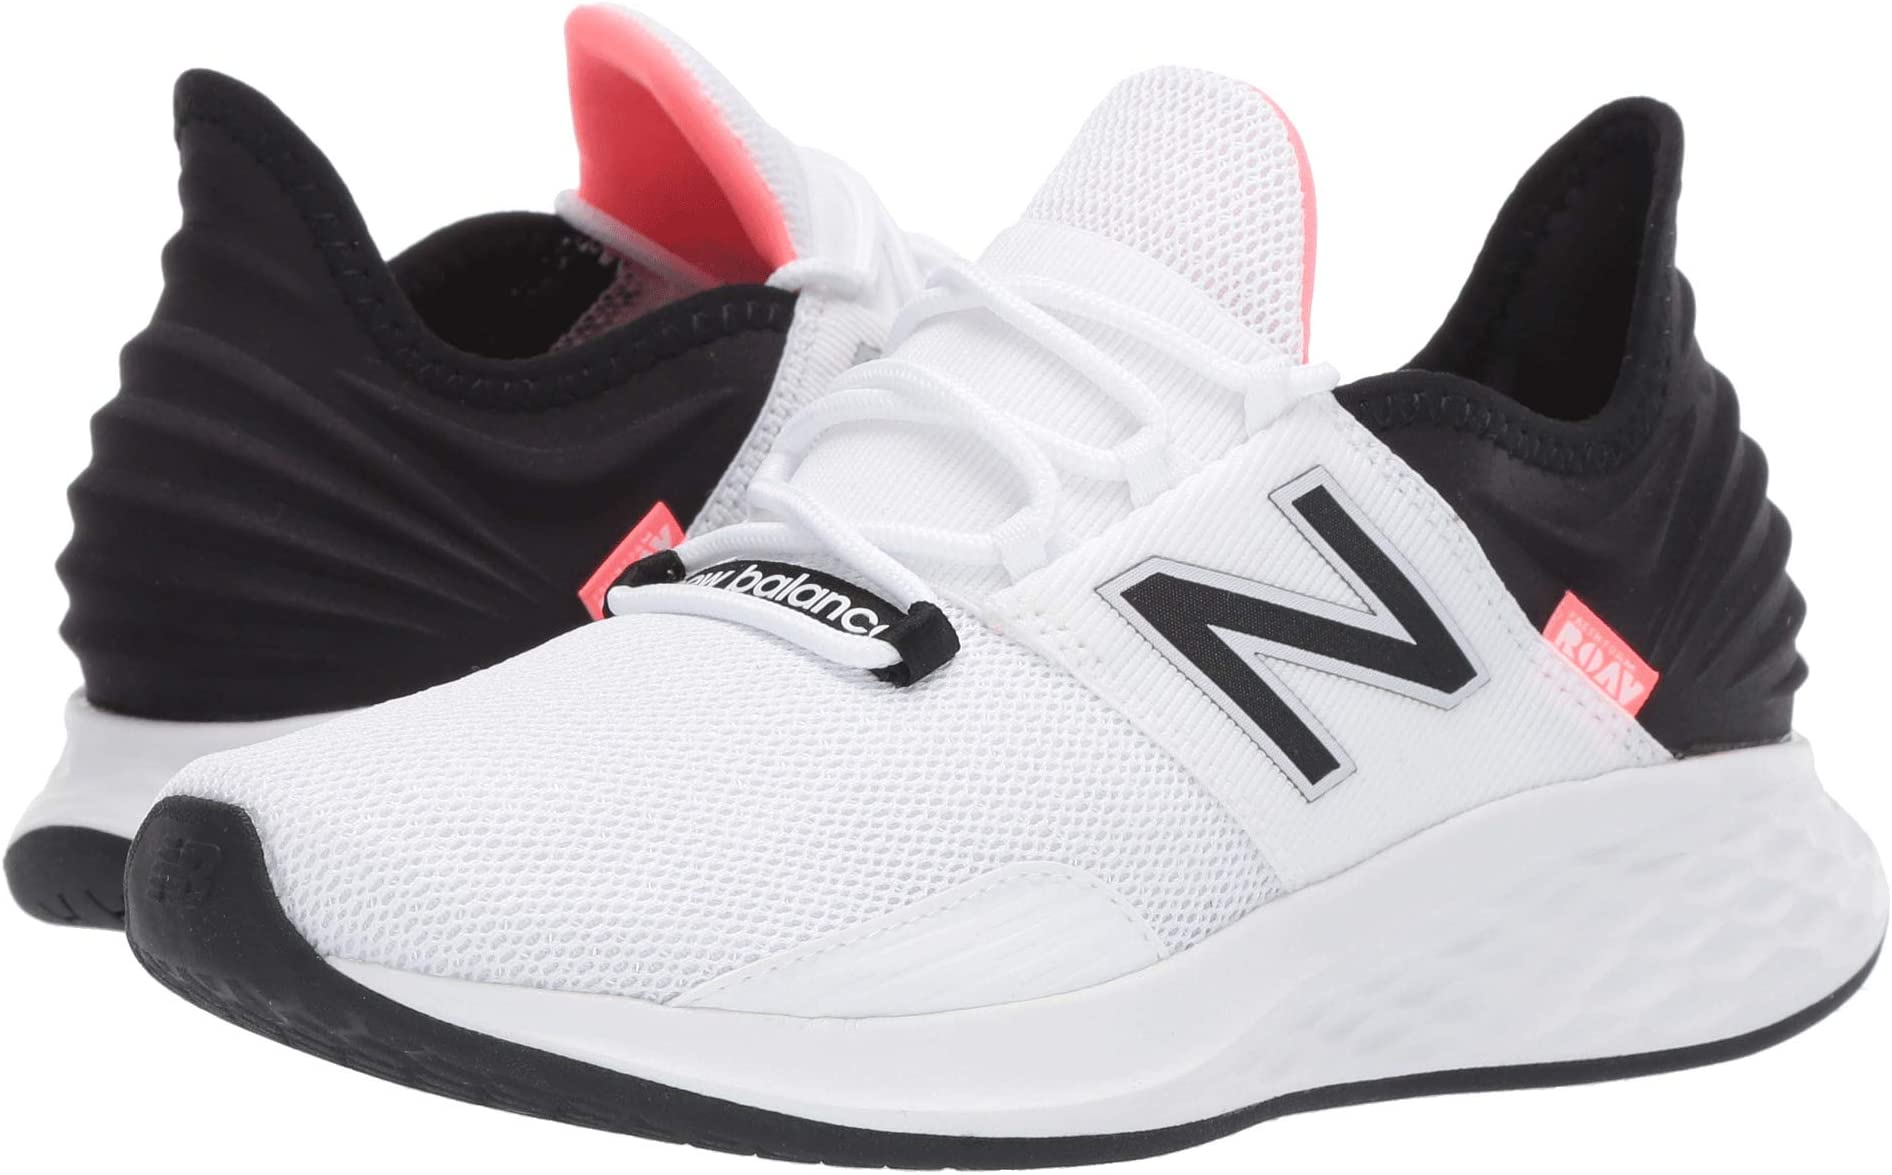 98fbf7d226 New Balance Shoes, Clothing, Activewear, Socks | Zappos.com